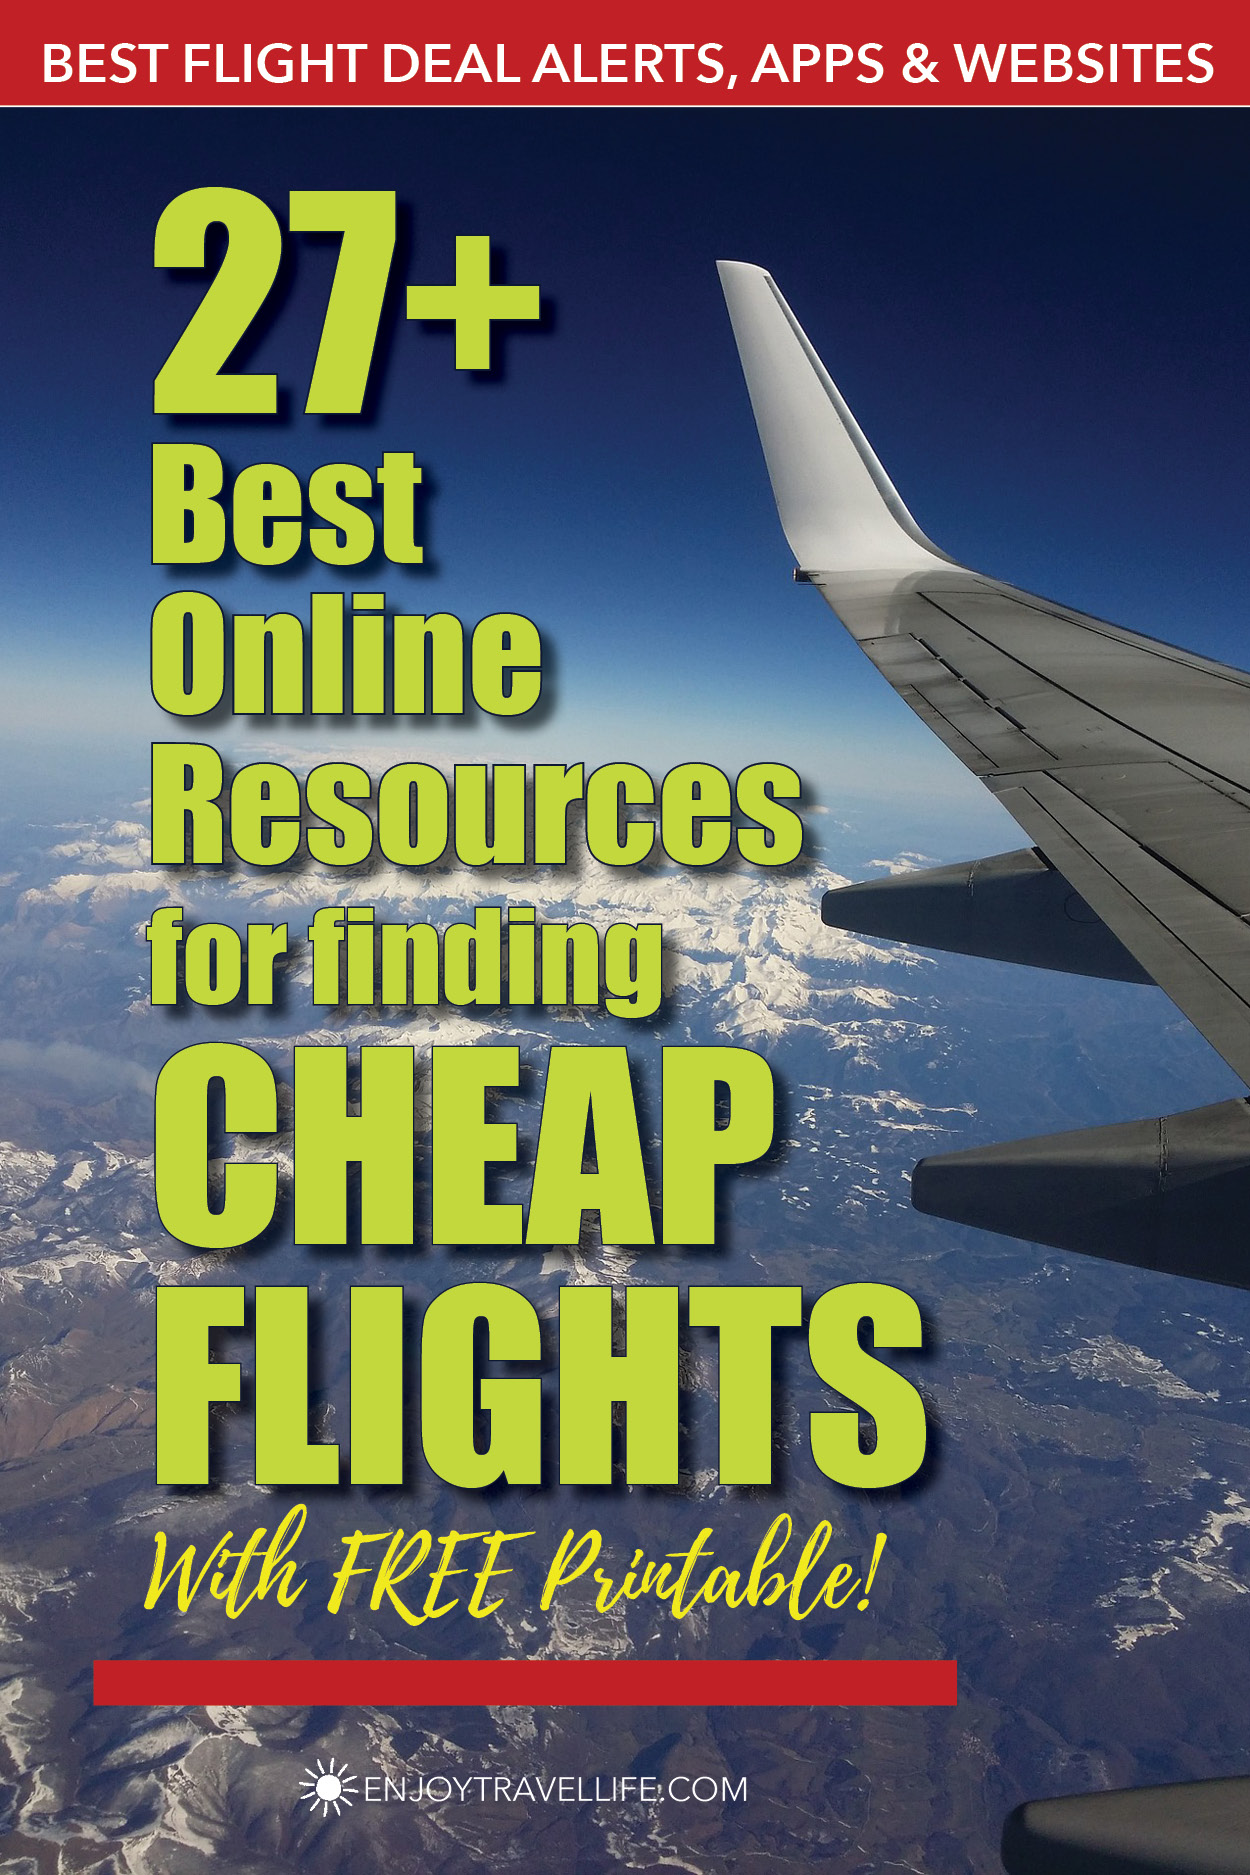 Best Online Resource for finding Cheap Flights [with FREE Printable]